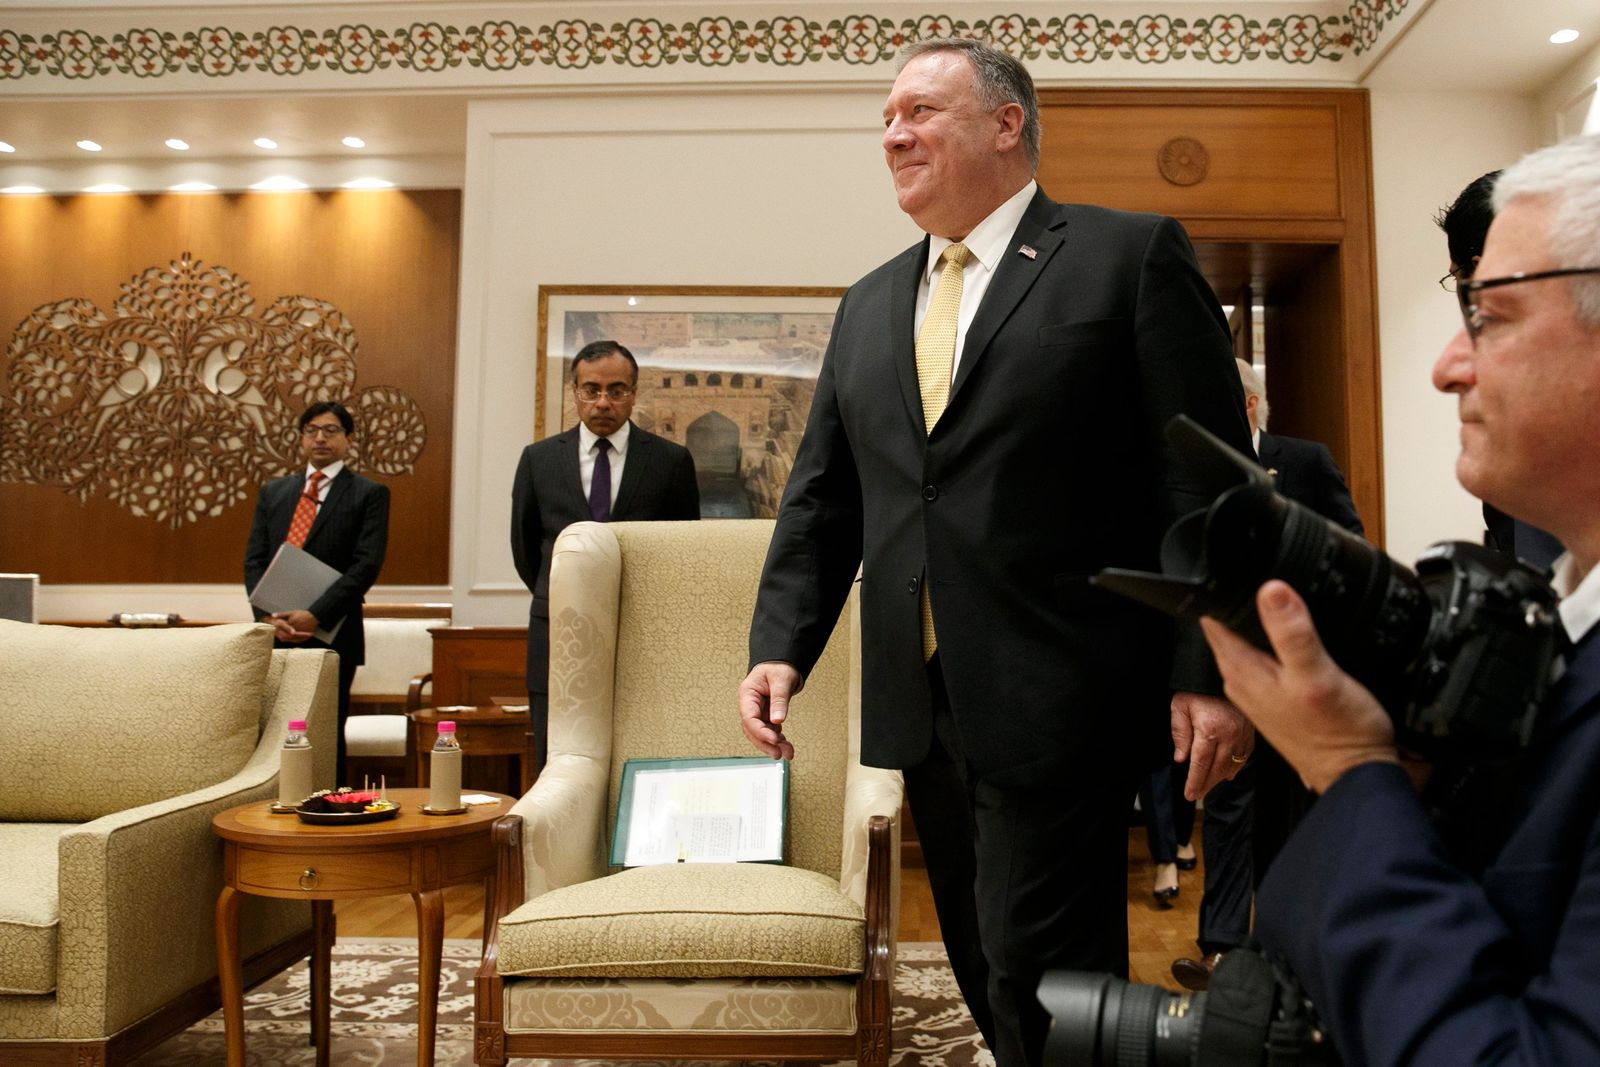 U.S. Secretary of State Mike Pompeo enters the room to meet with Indian Prime Minister Narendra Modi, at the Prime Minister's Residence, Wednesday, June 26, 2019, in New Delhi, India. (AP Photo/Jacquelyn Martin, Pool)